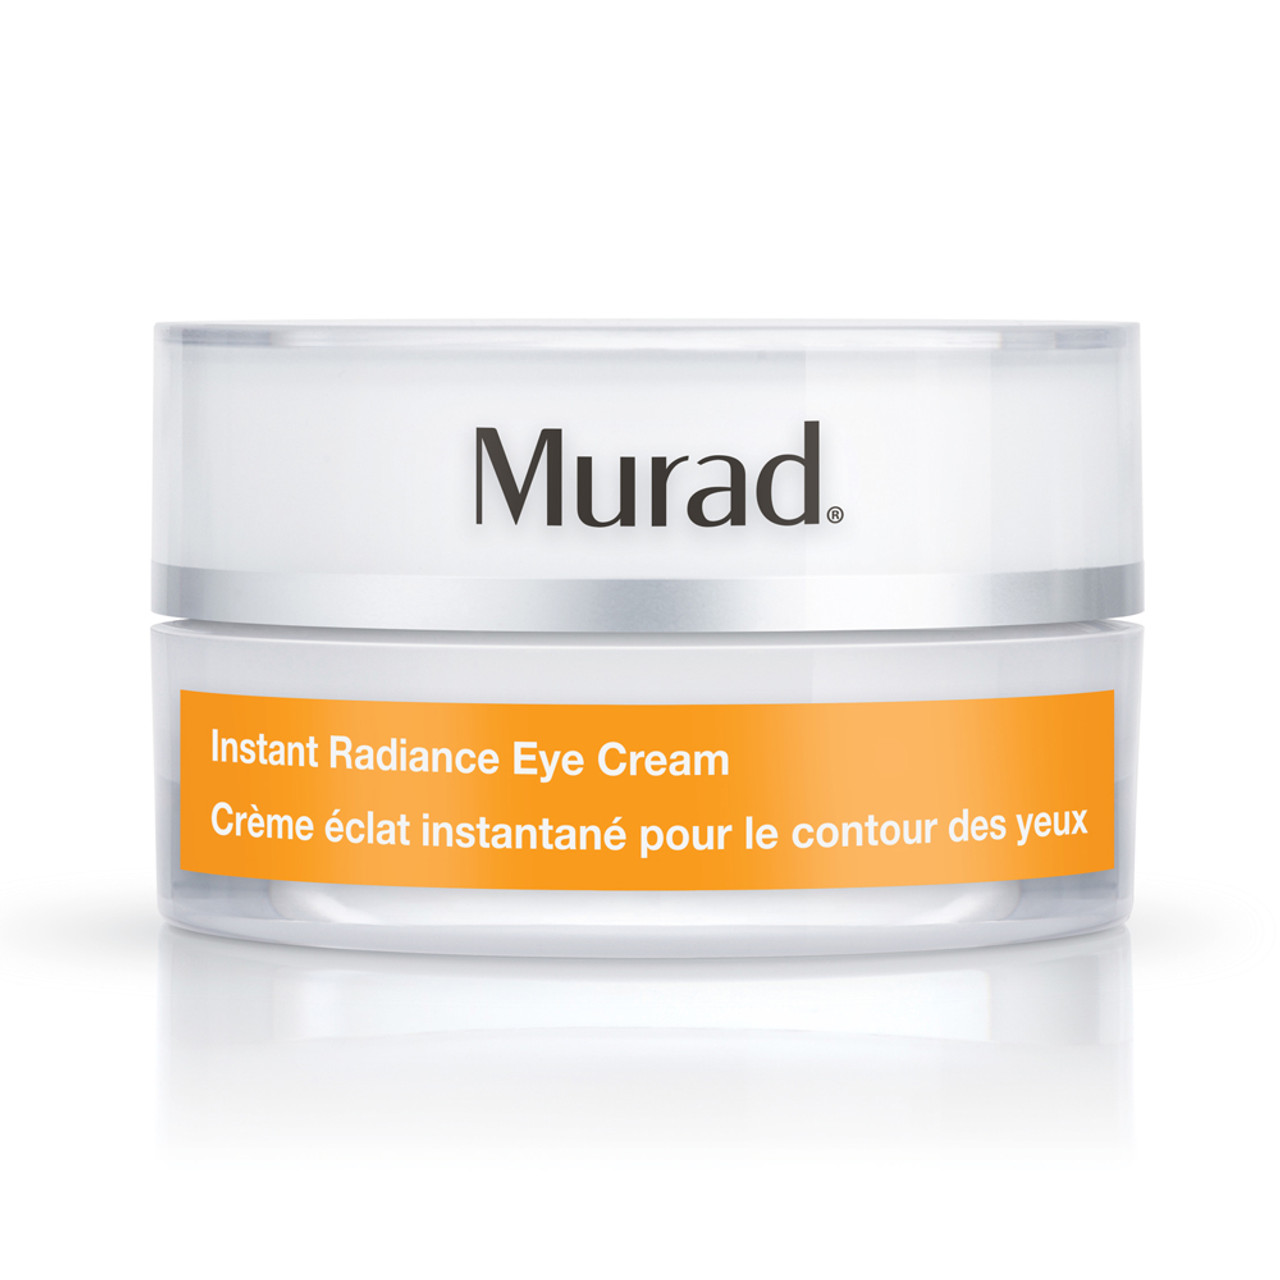 Murad Environmental Shield™ Instant Radiance Eye Cream 0.5 oz